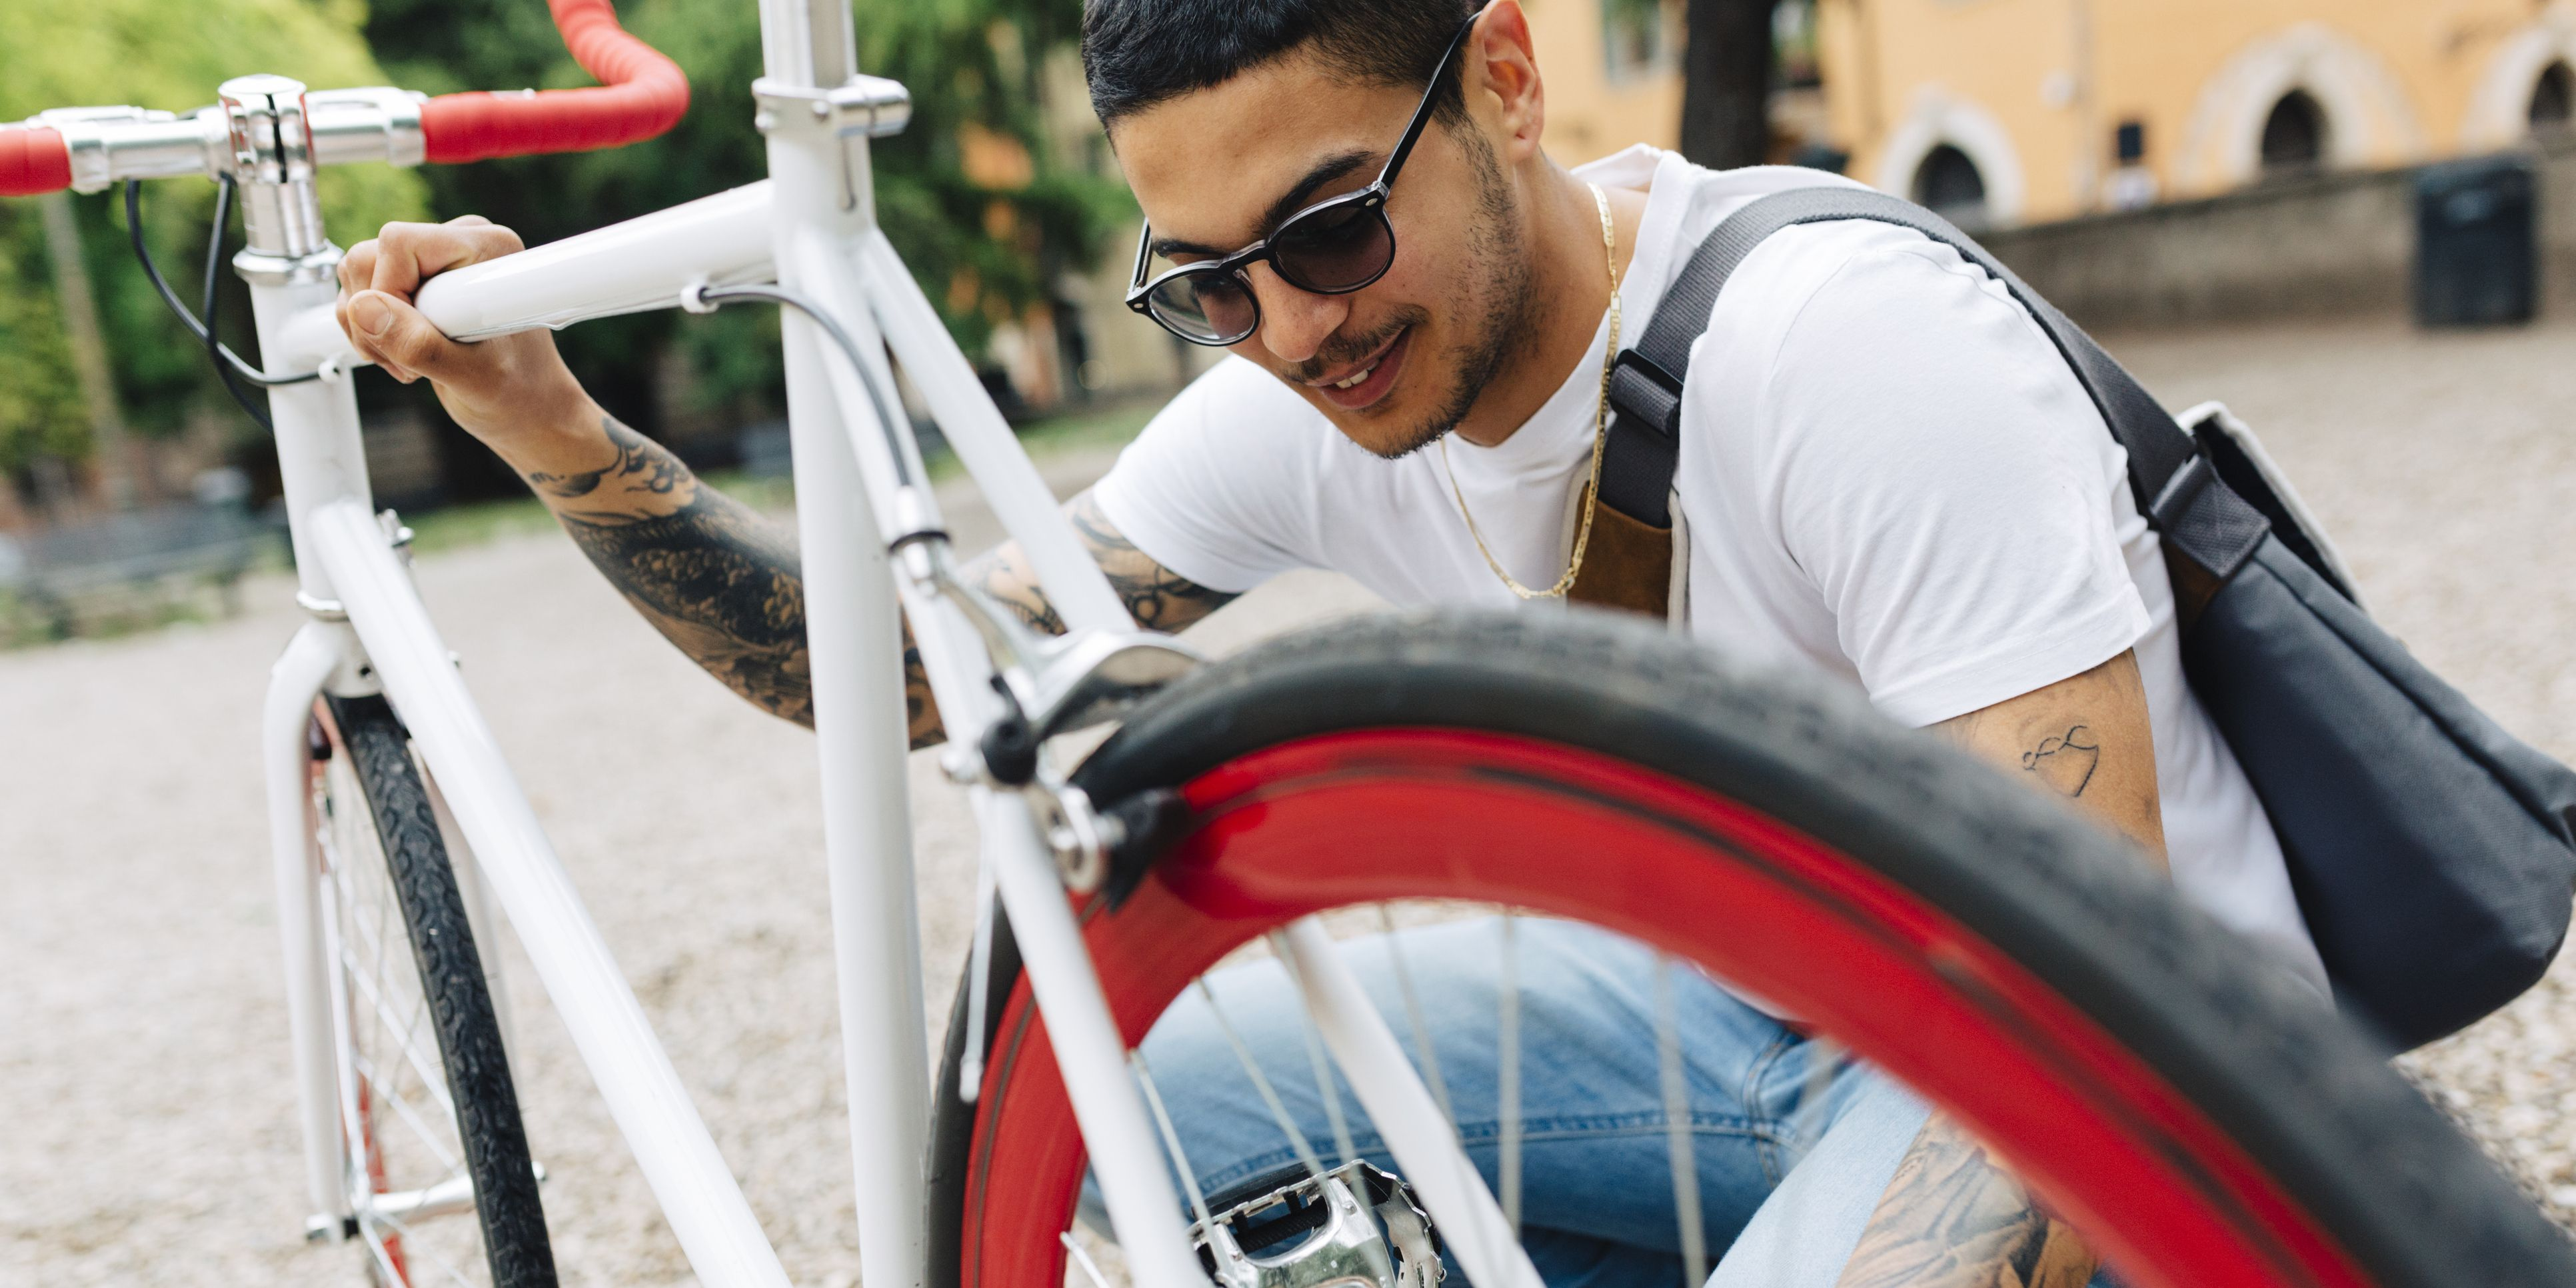 Young man with a bicycle outdoors